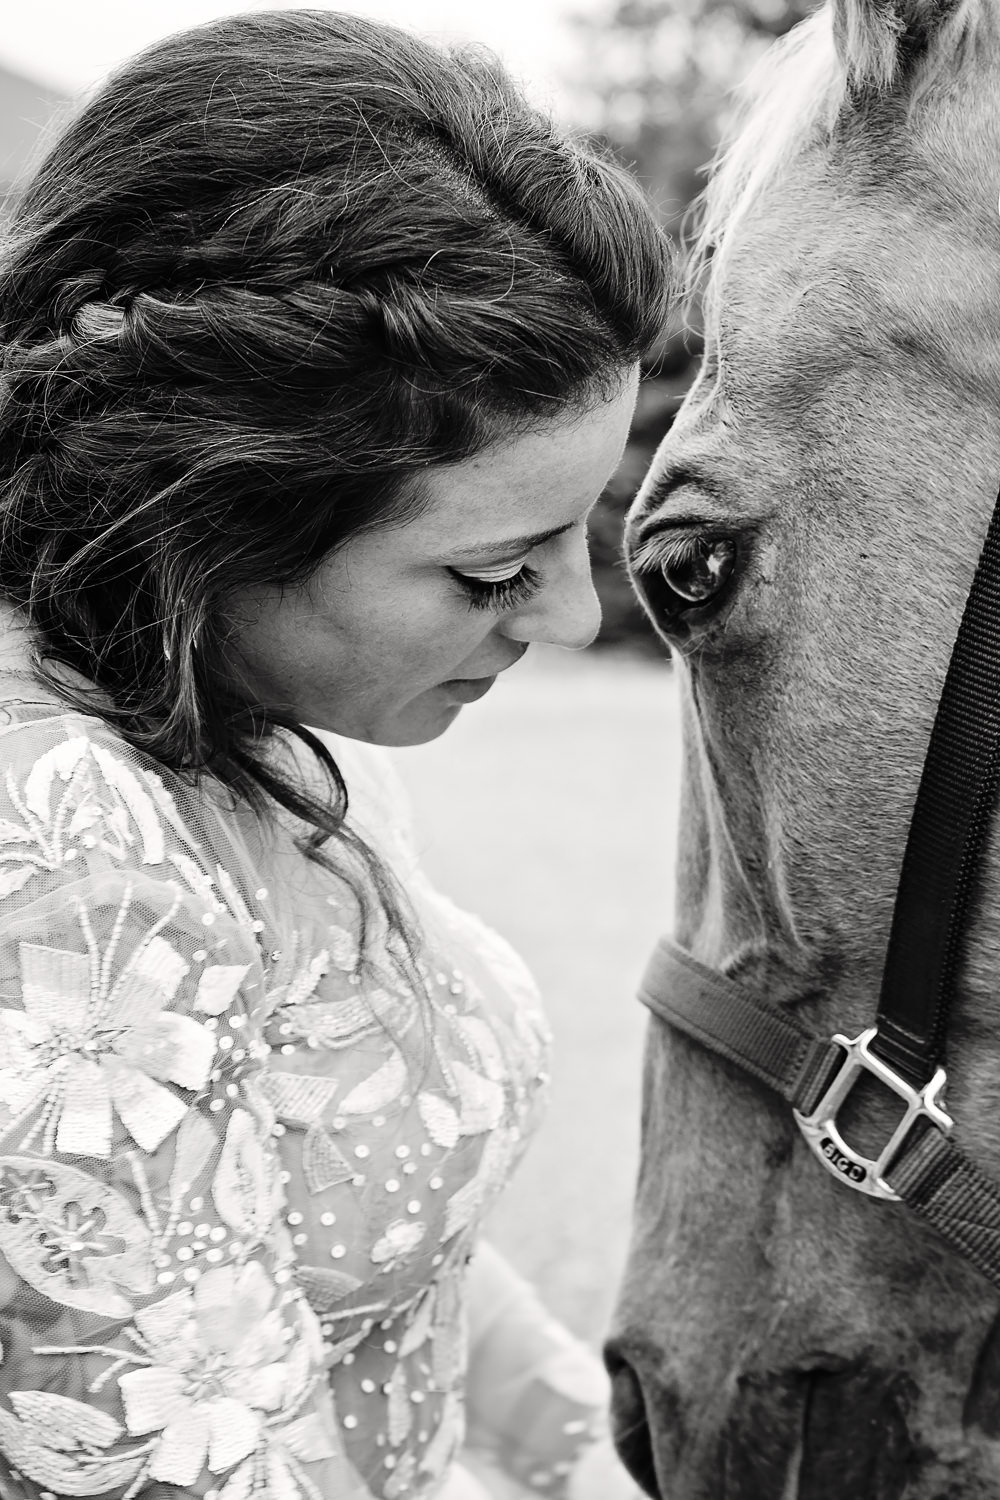 bozeman-hart-ranch-wedding-bride-snuggles-horse.jpg